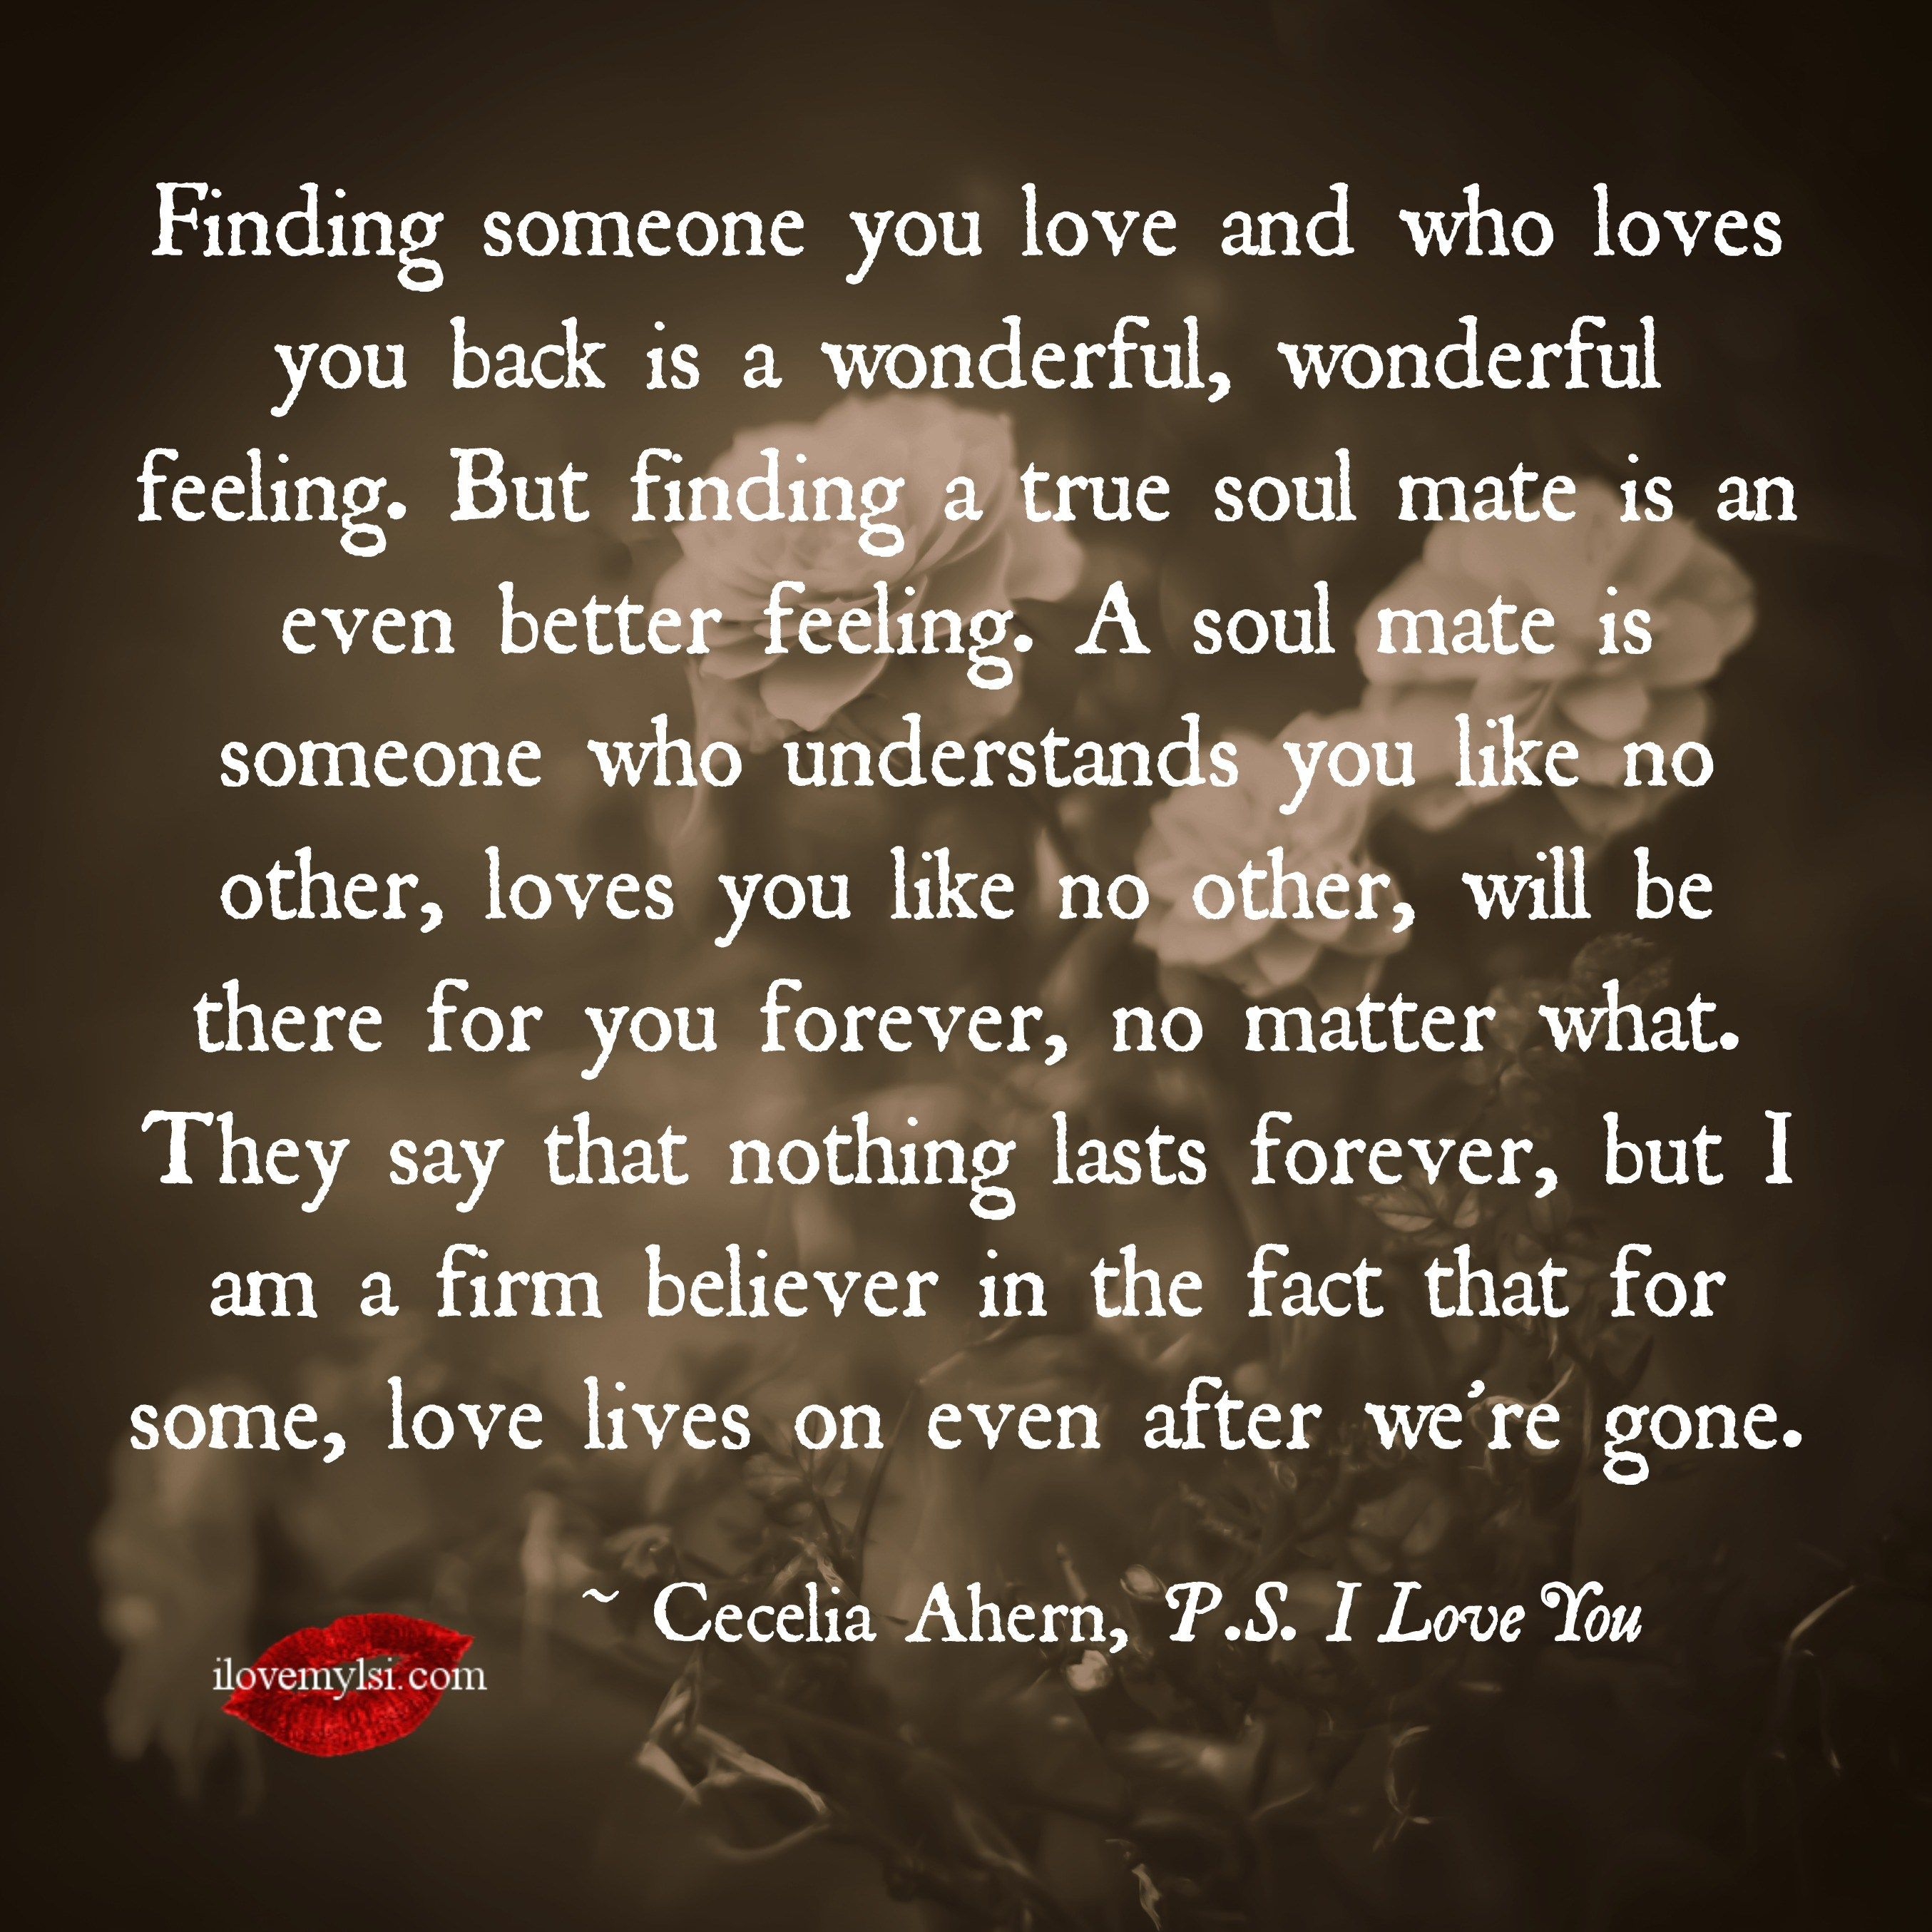 Finding someone you love and who loves you back is a wonderful wonderful feeling